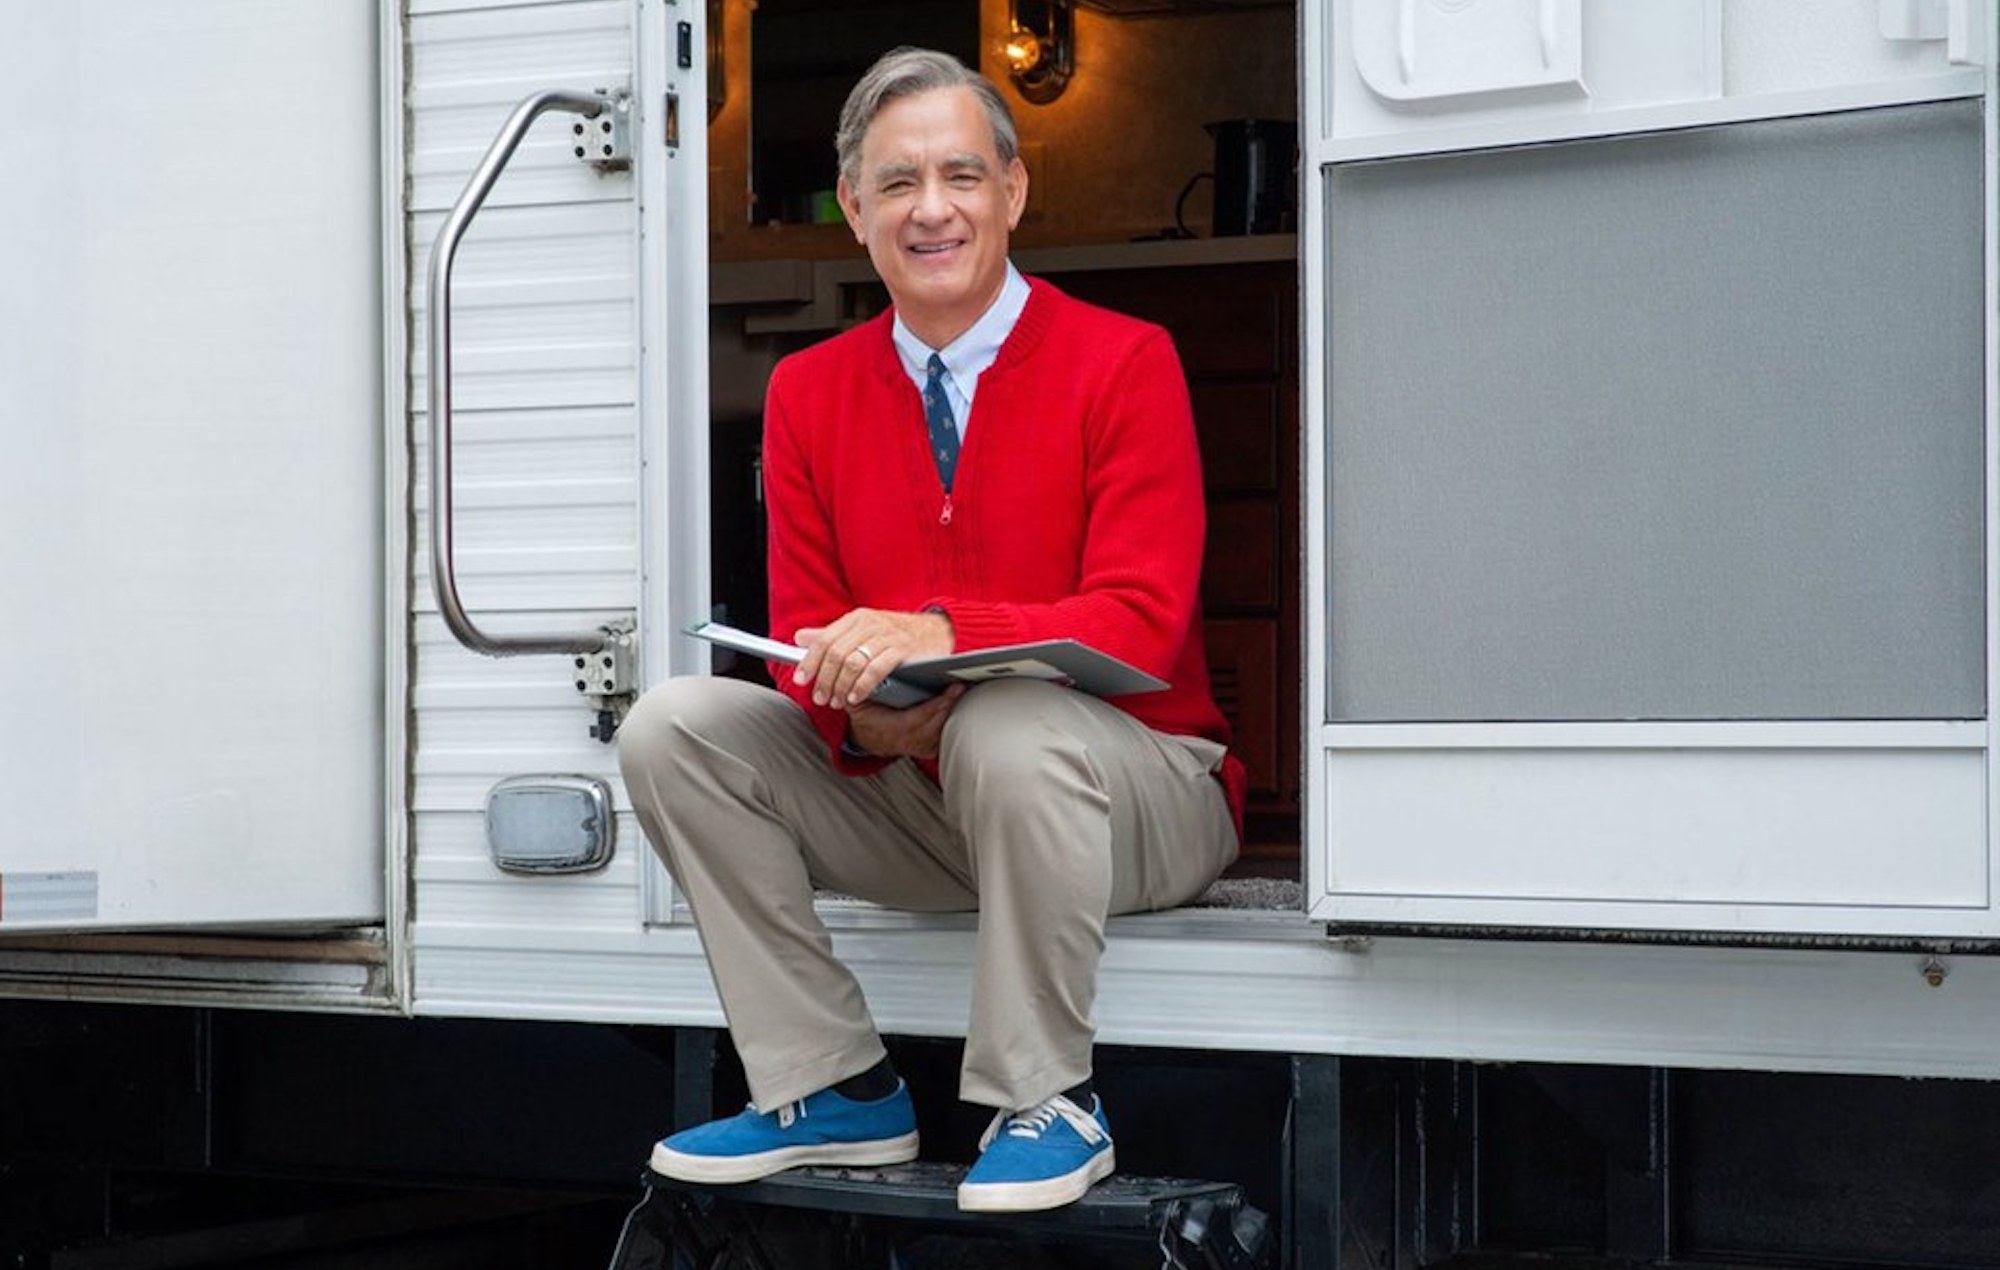 Tom Hanks Mr Rogers Movie A Beautiful Day In The Neighborhood Release Date Trailer Plot Cast And Everything We Know Nme